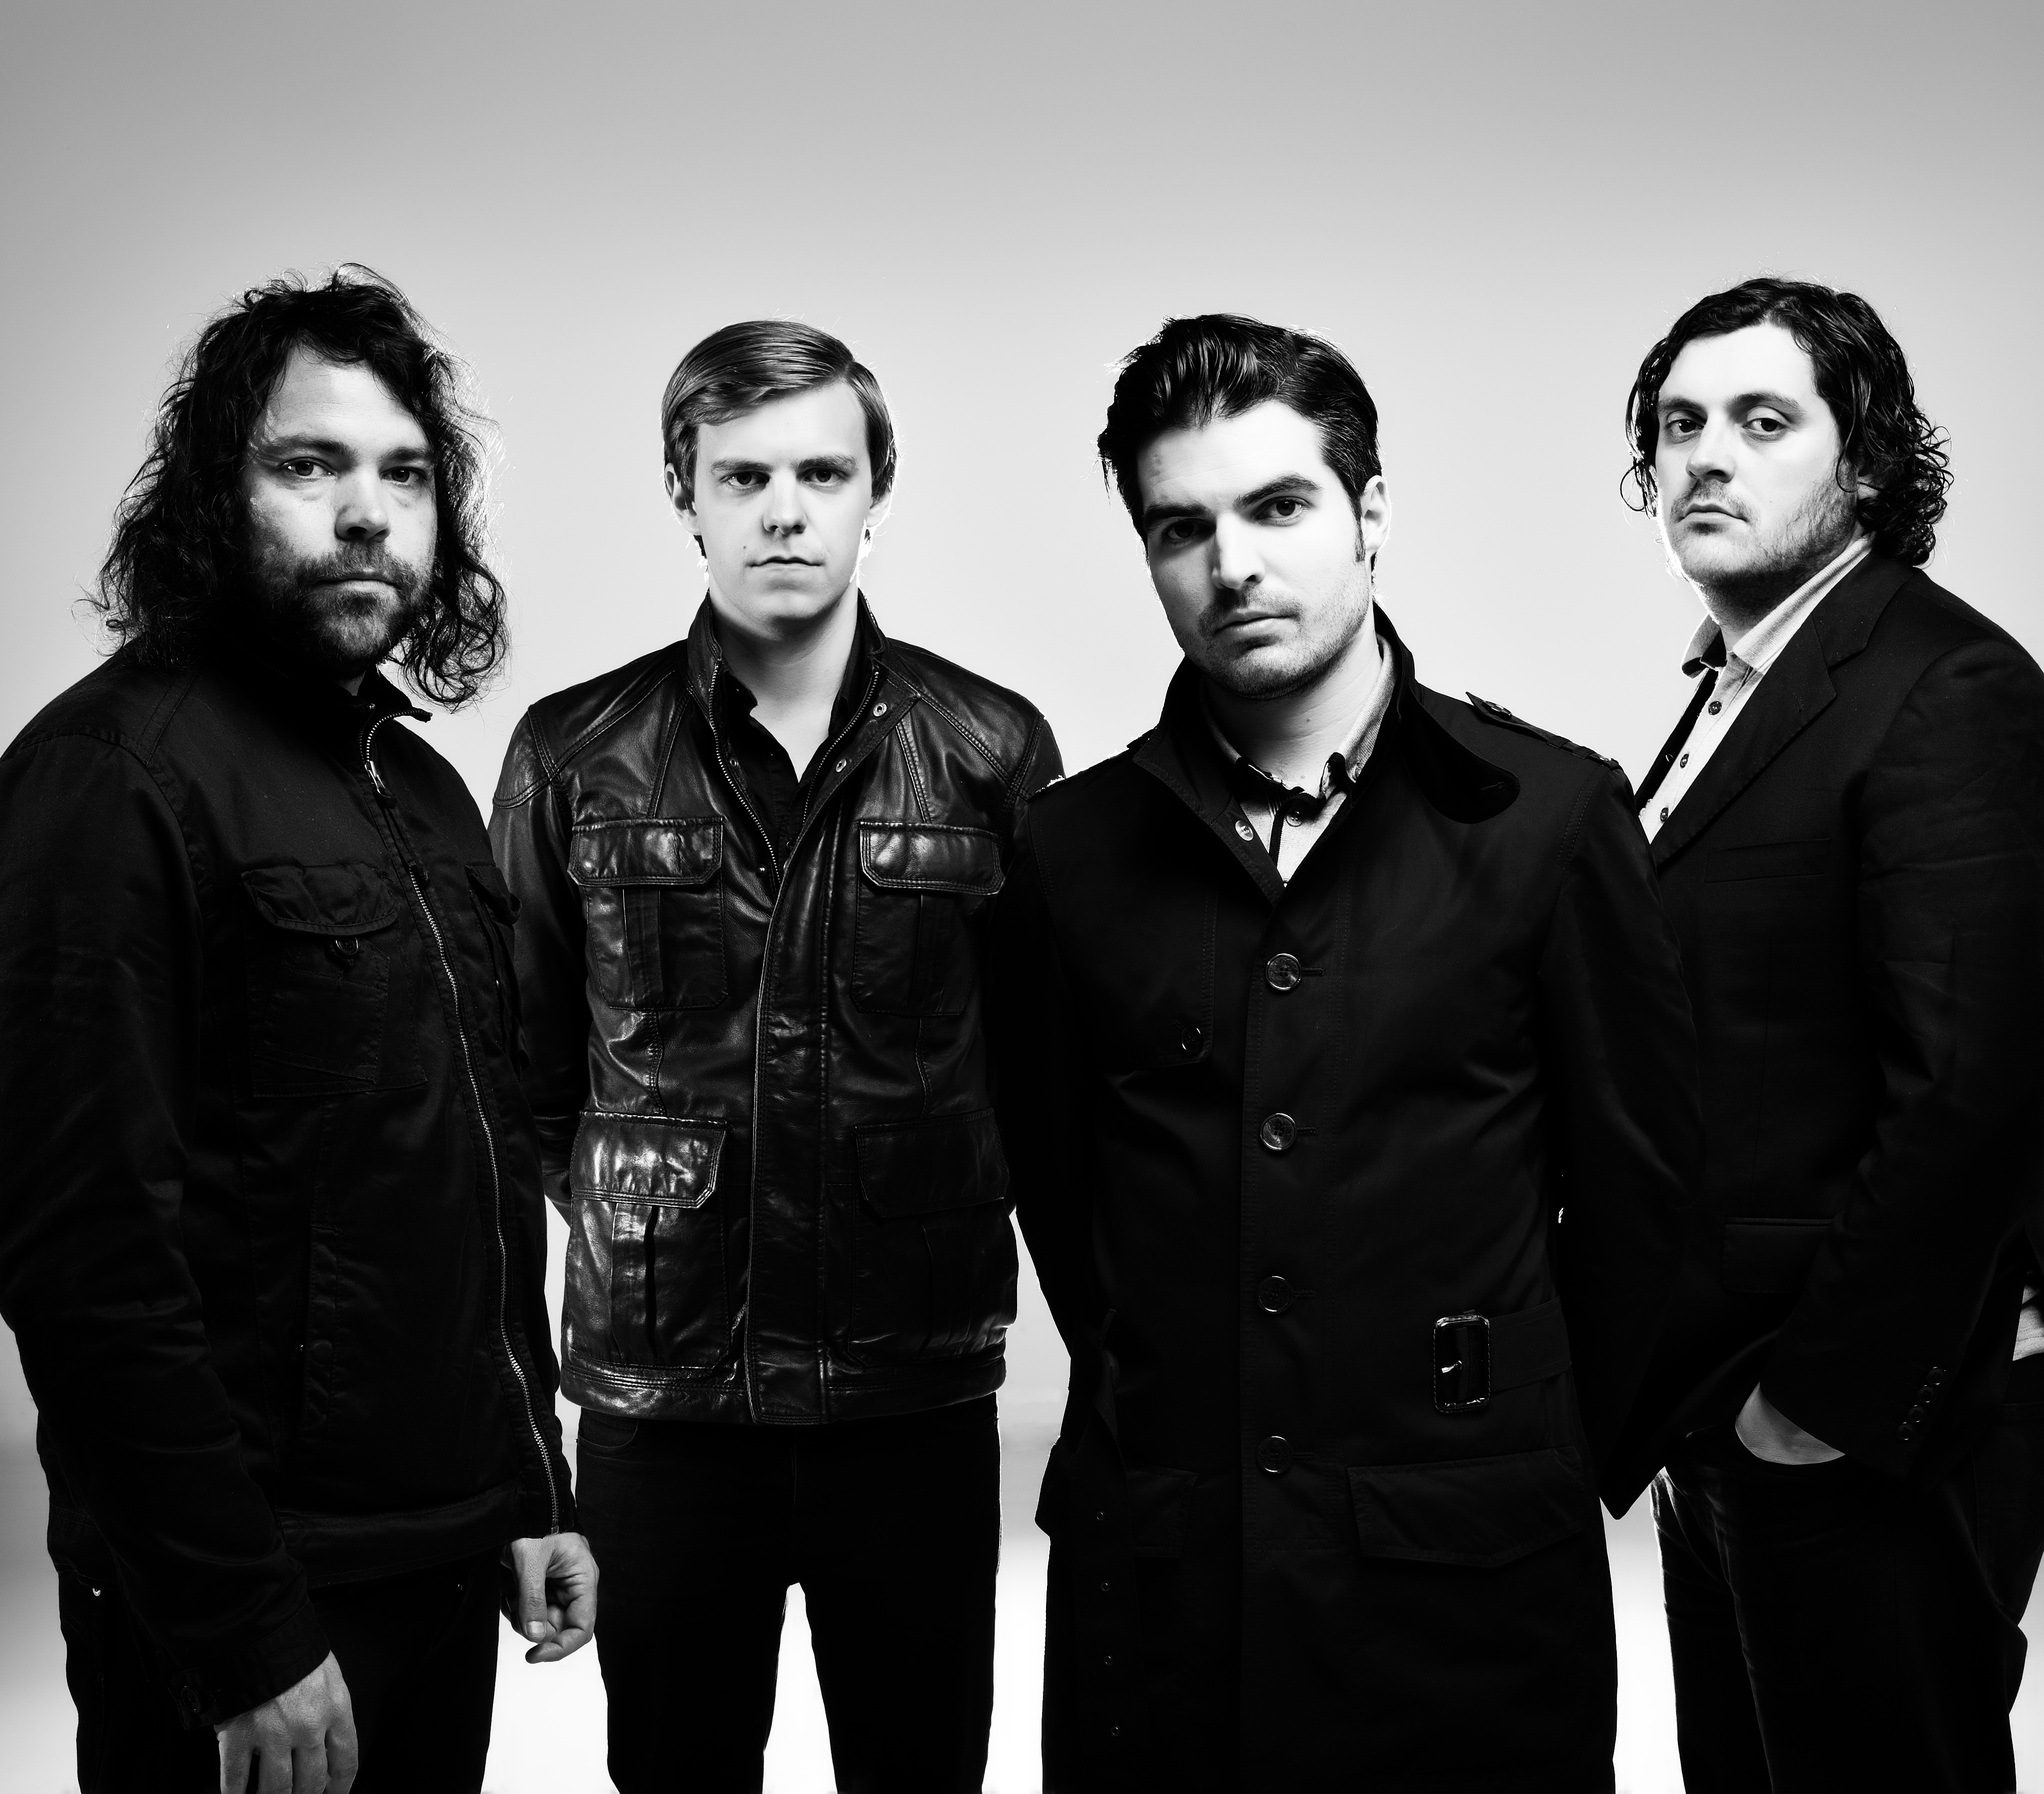 4594x4032 > The Boxer Rebellion Wallpapers